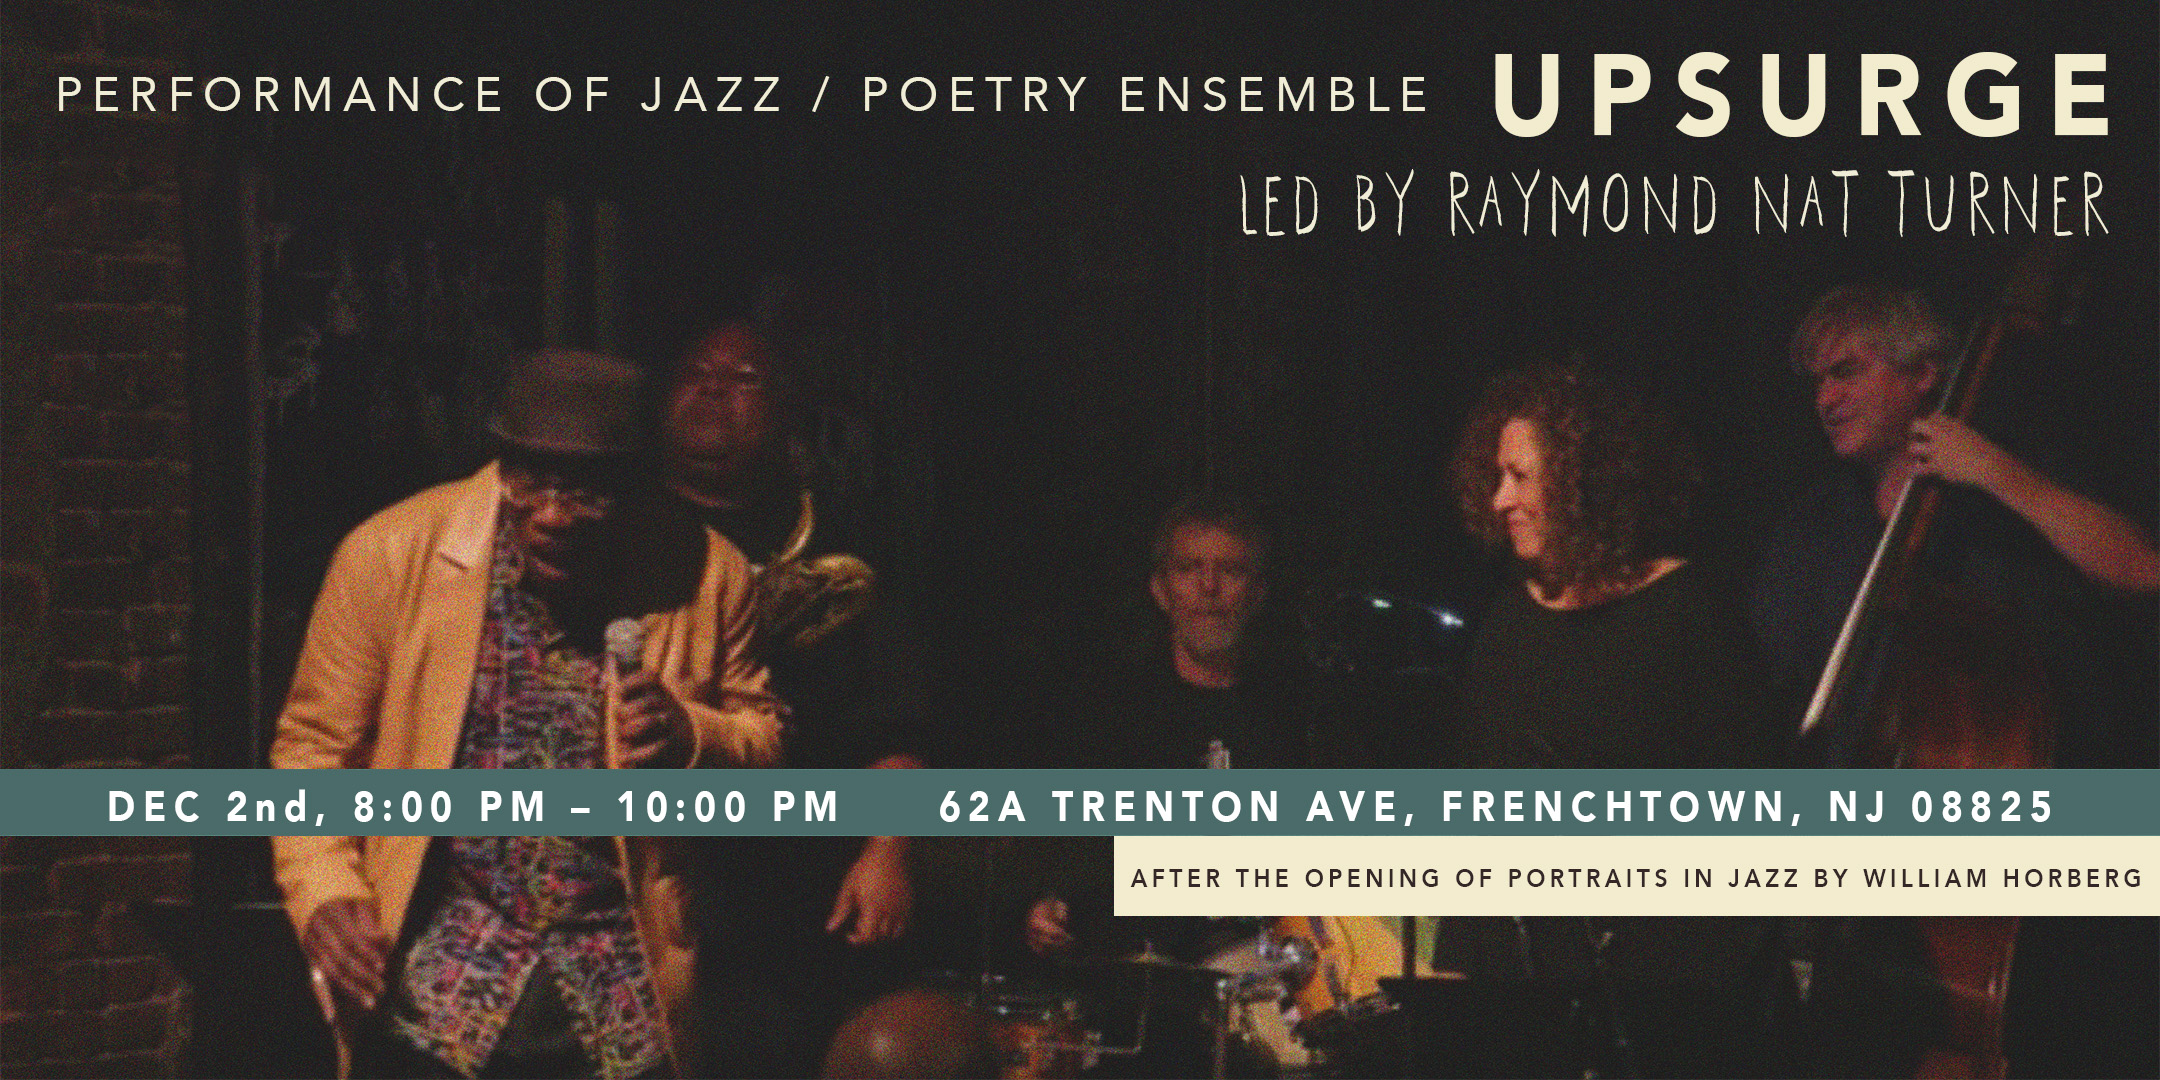 Performance of Jazz/Poetry Ensemble Upsurge Led by Raymond Nat Turner. @ ArtYard | Frenchtown | New Jersey | United States